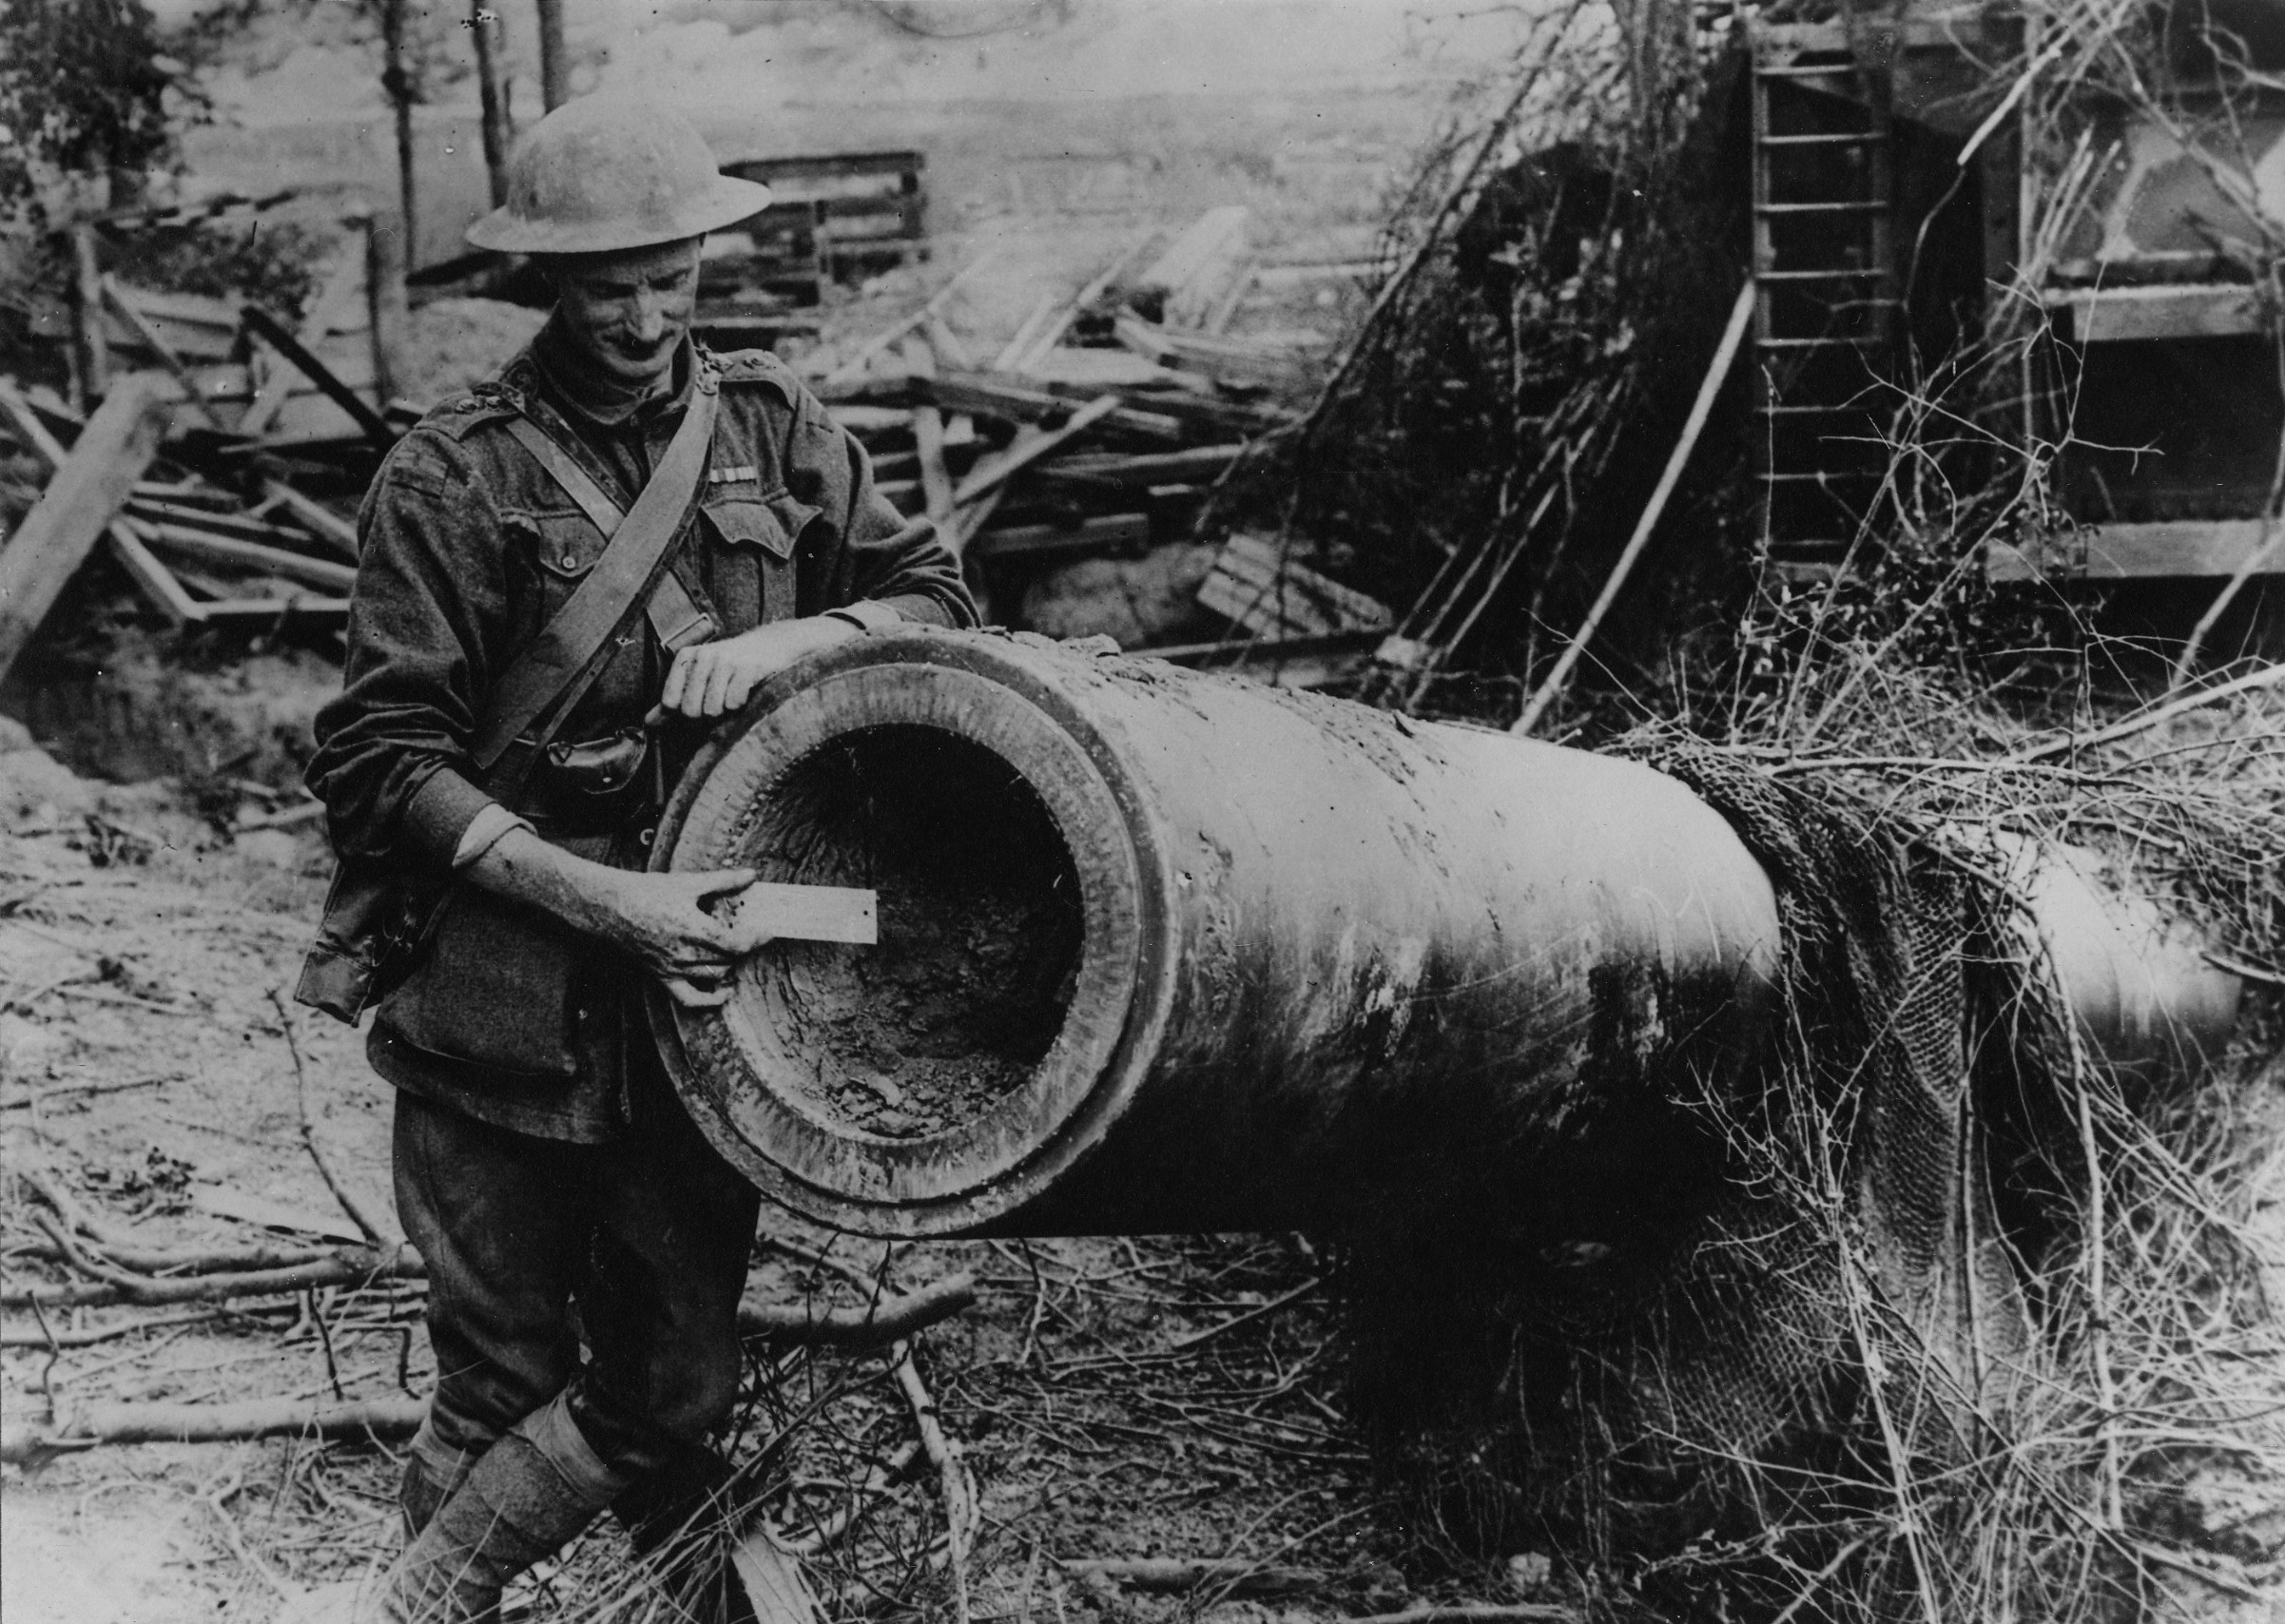 Lieutenant C. O. Clark MC MM, Intelligence Officer of the 3rd Battalion, with a 6 inch rule inset in the muzzle of the wrecked 15 inch naval gun taken by the Australian troops in a bayonet attack, at Arcy Wood, near Chuignolles, on 23 August 1918.